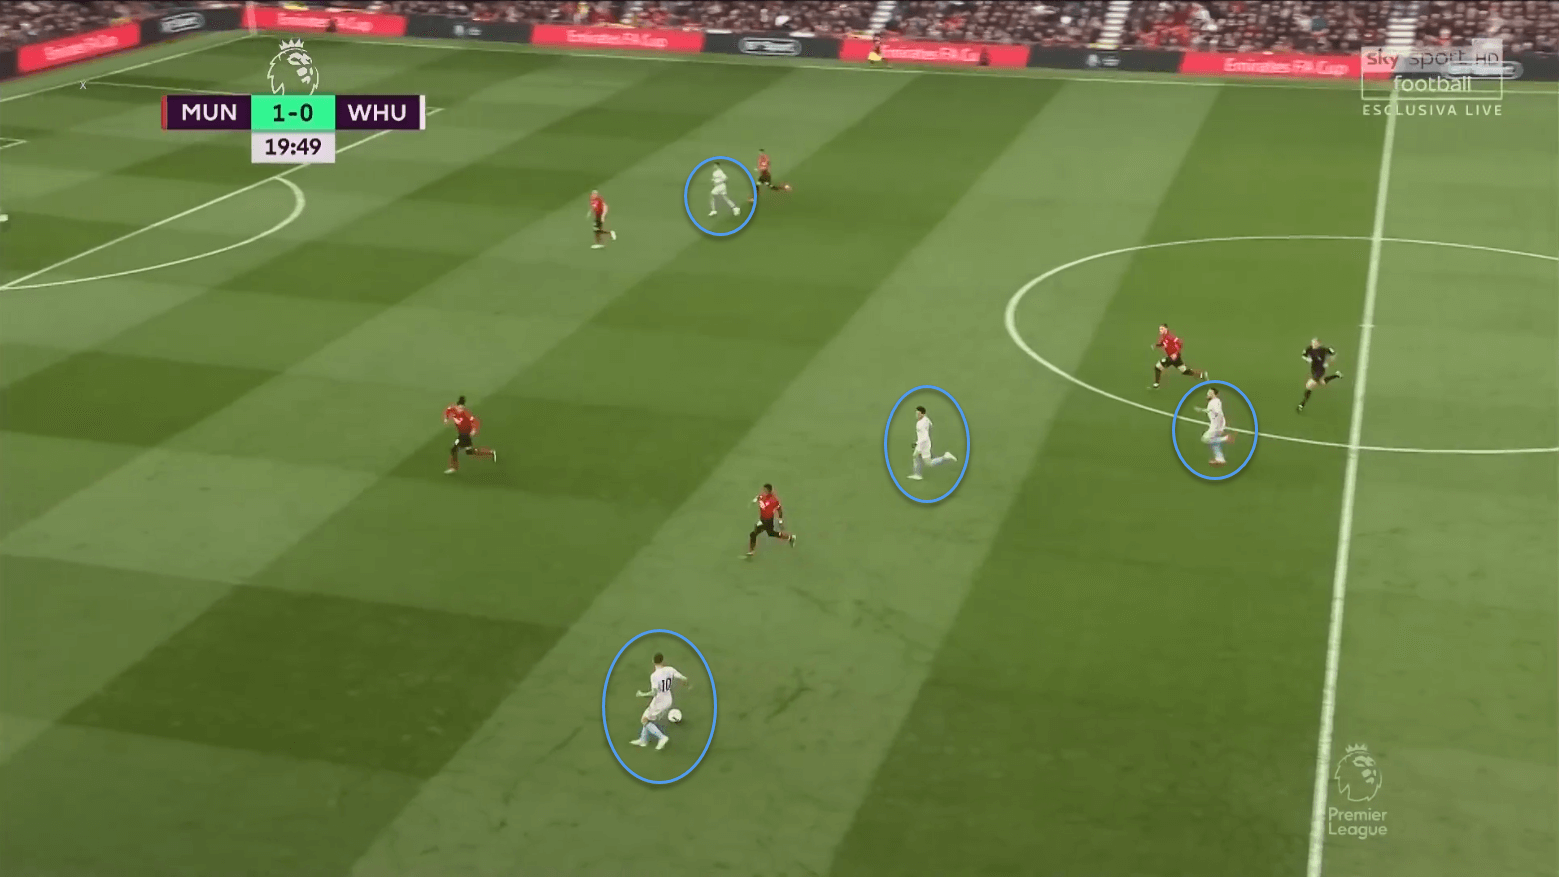 Premier League 2018/19: Manchester United vs West Ham United Tactical Analysis